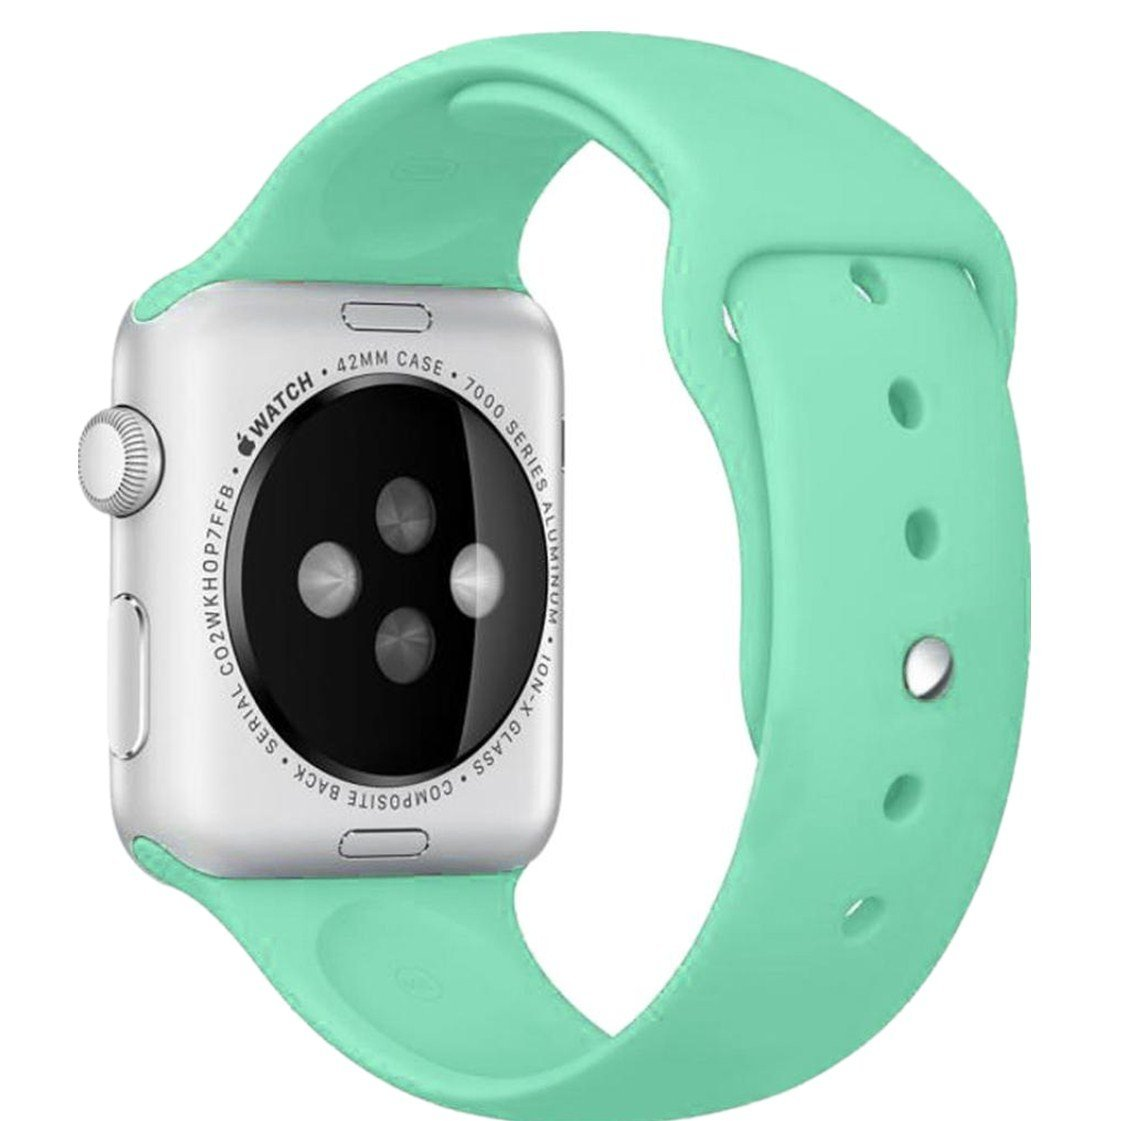 Apple Watch Band, Creazy® Sports Silicone Bracelet Strap Band for 38mm Apple Watch